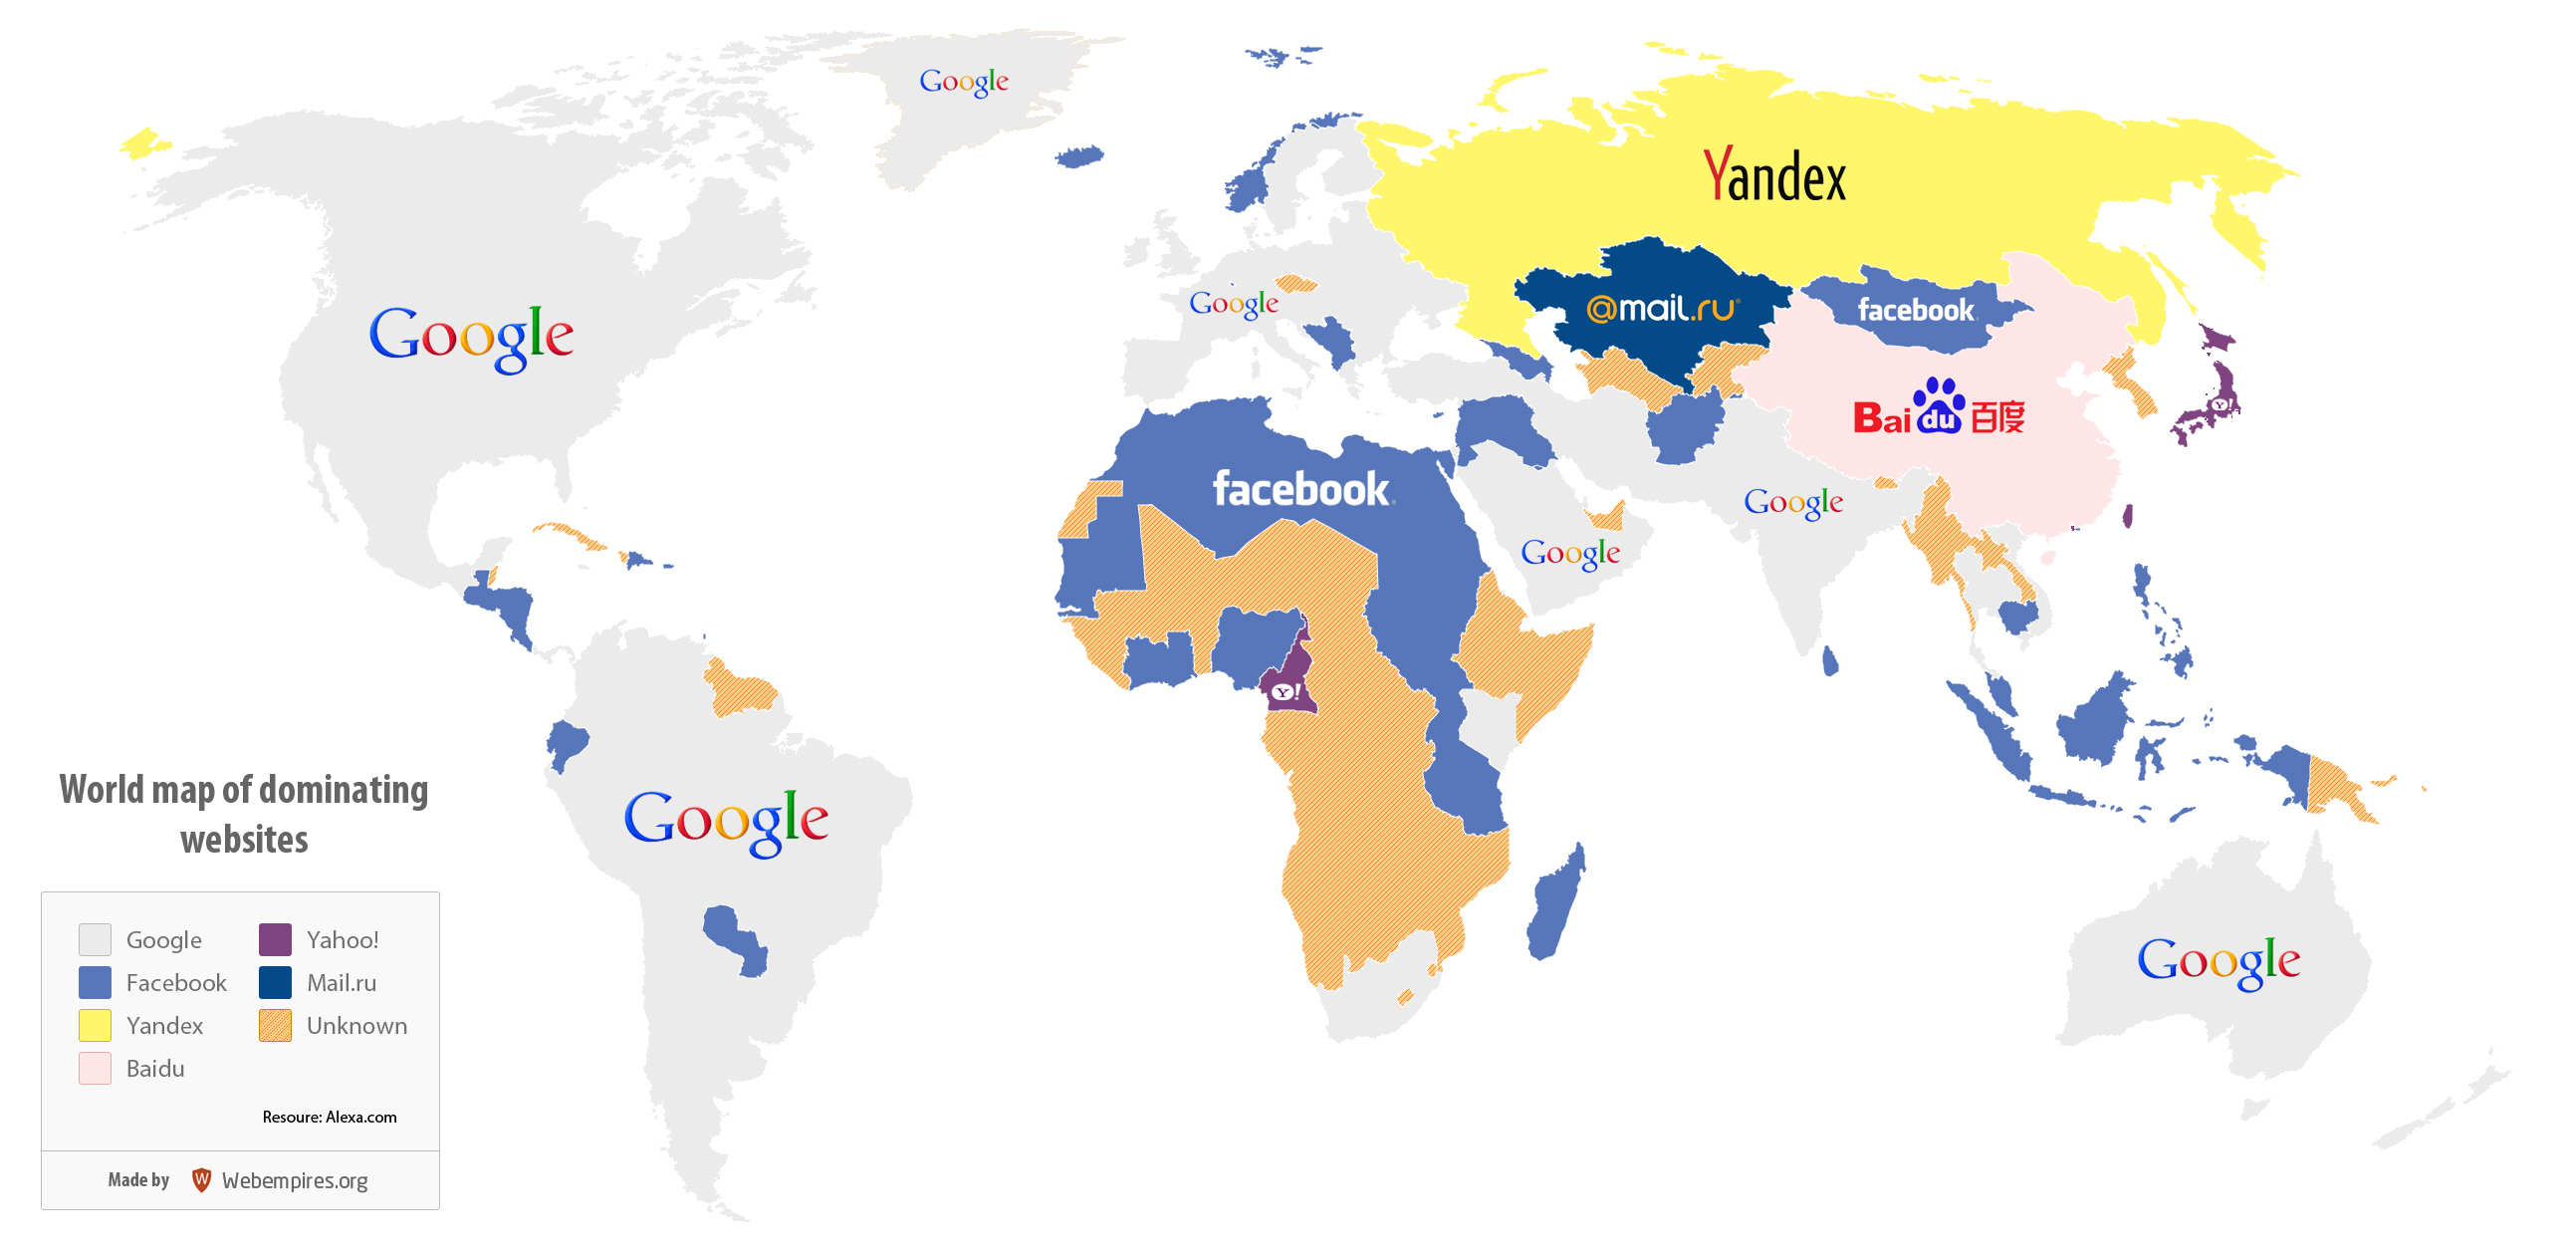 The most popular social networks in Russia and the world